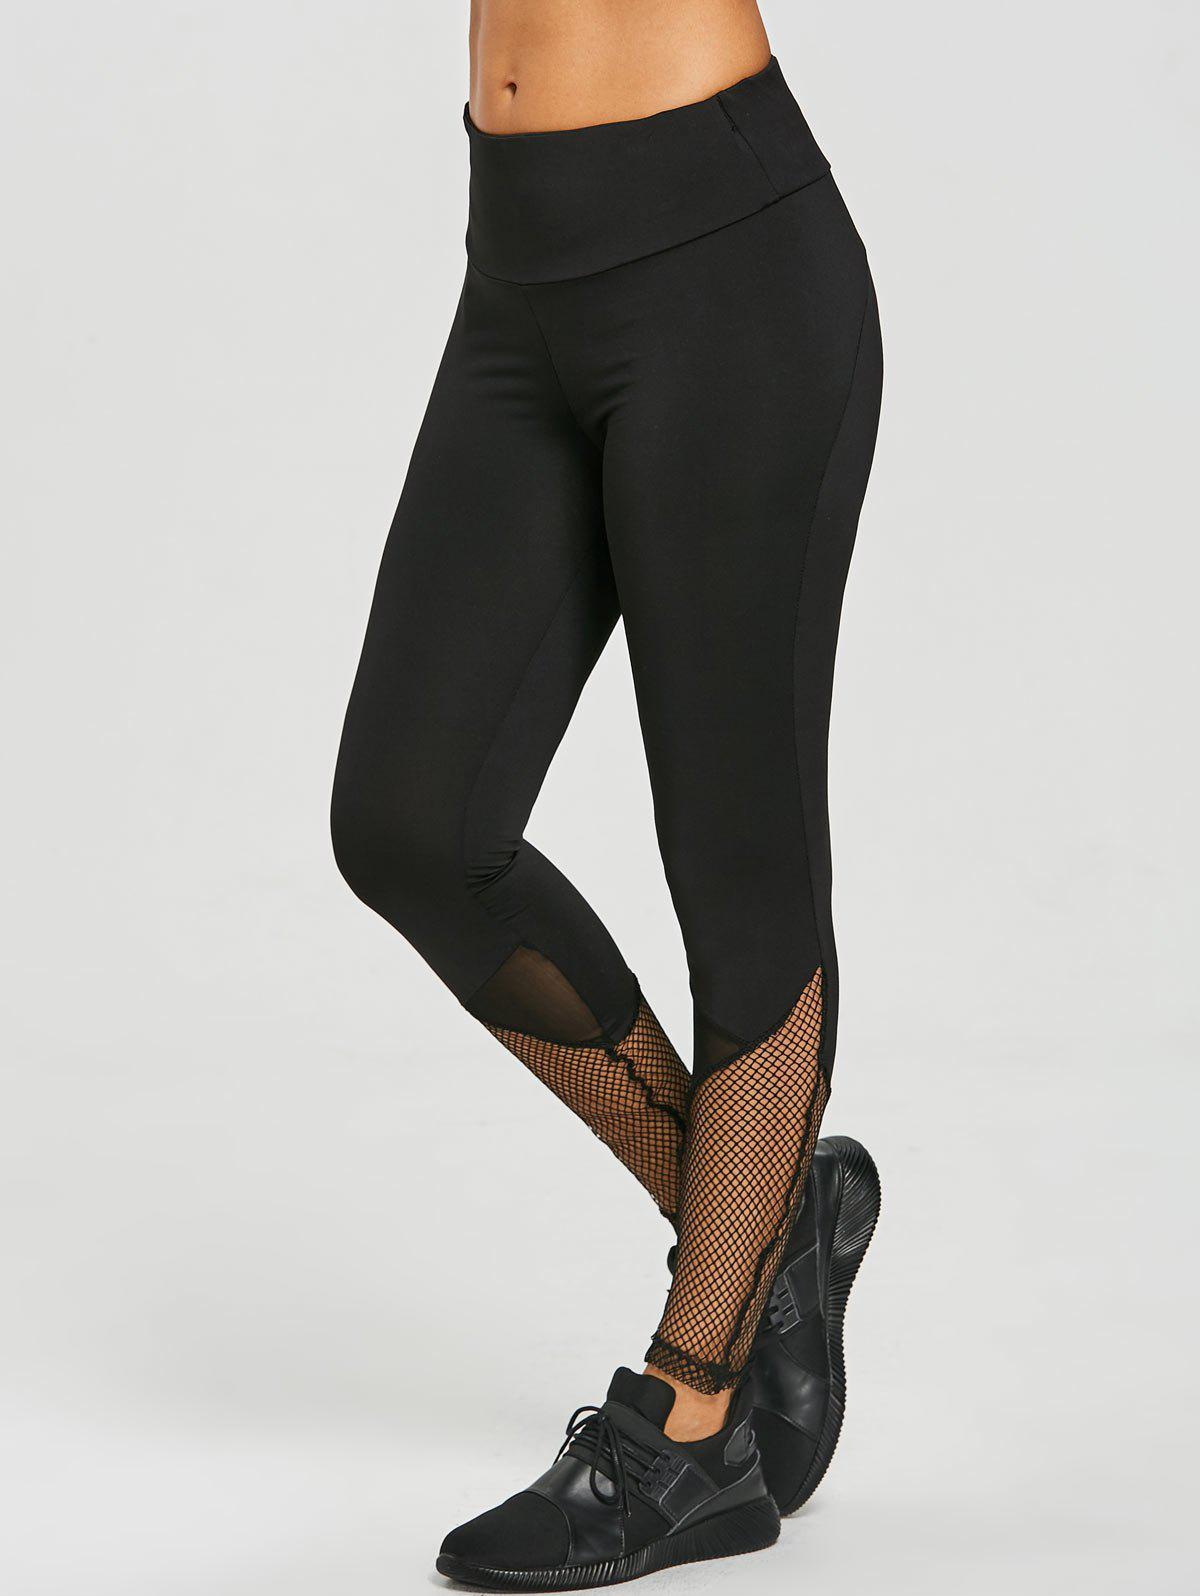 Mesh Insert Leggings - BLACK S